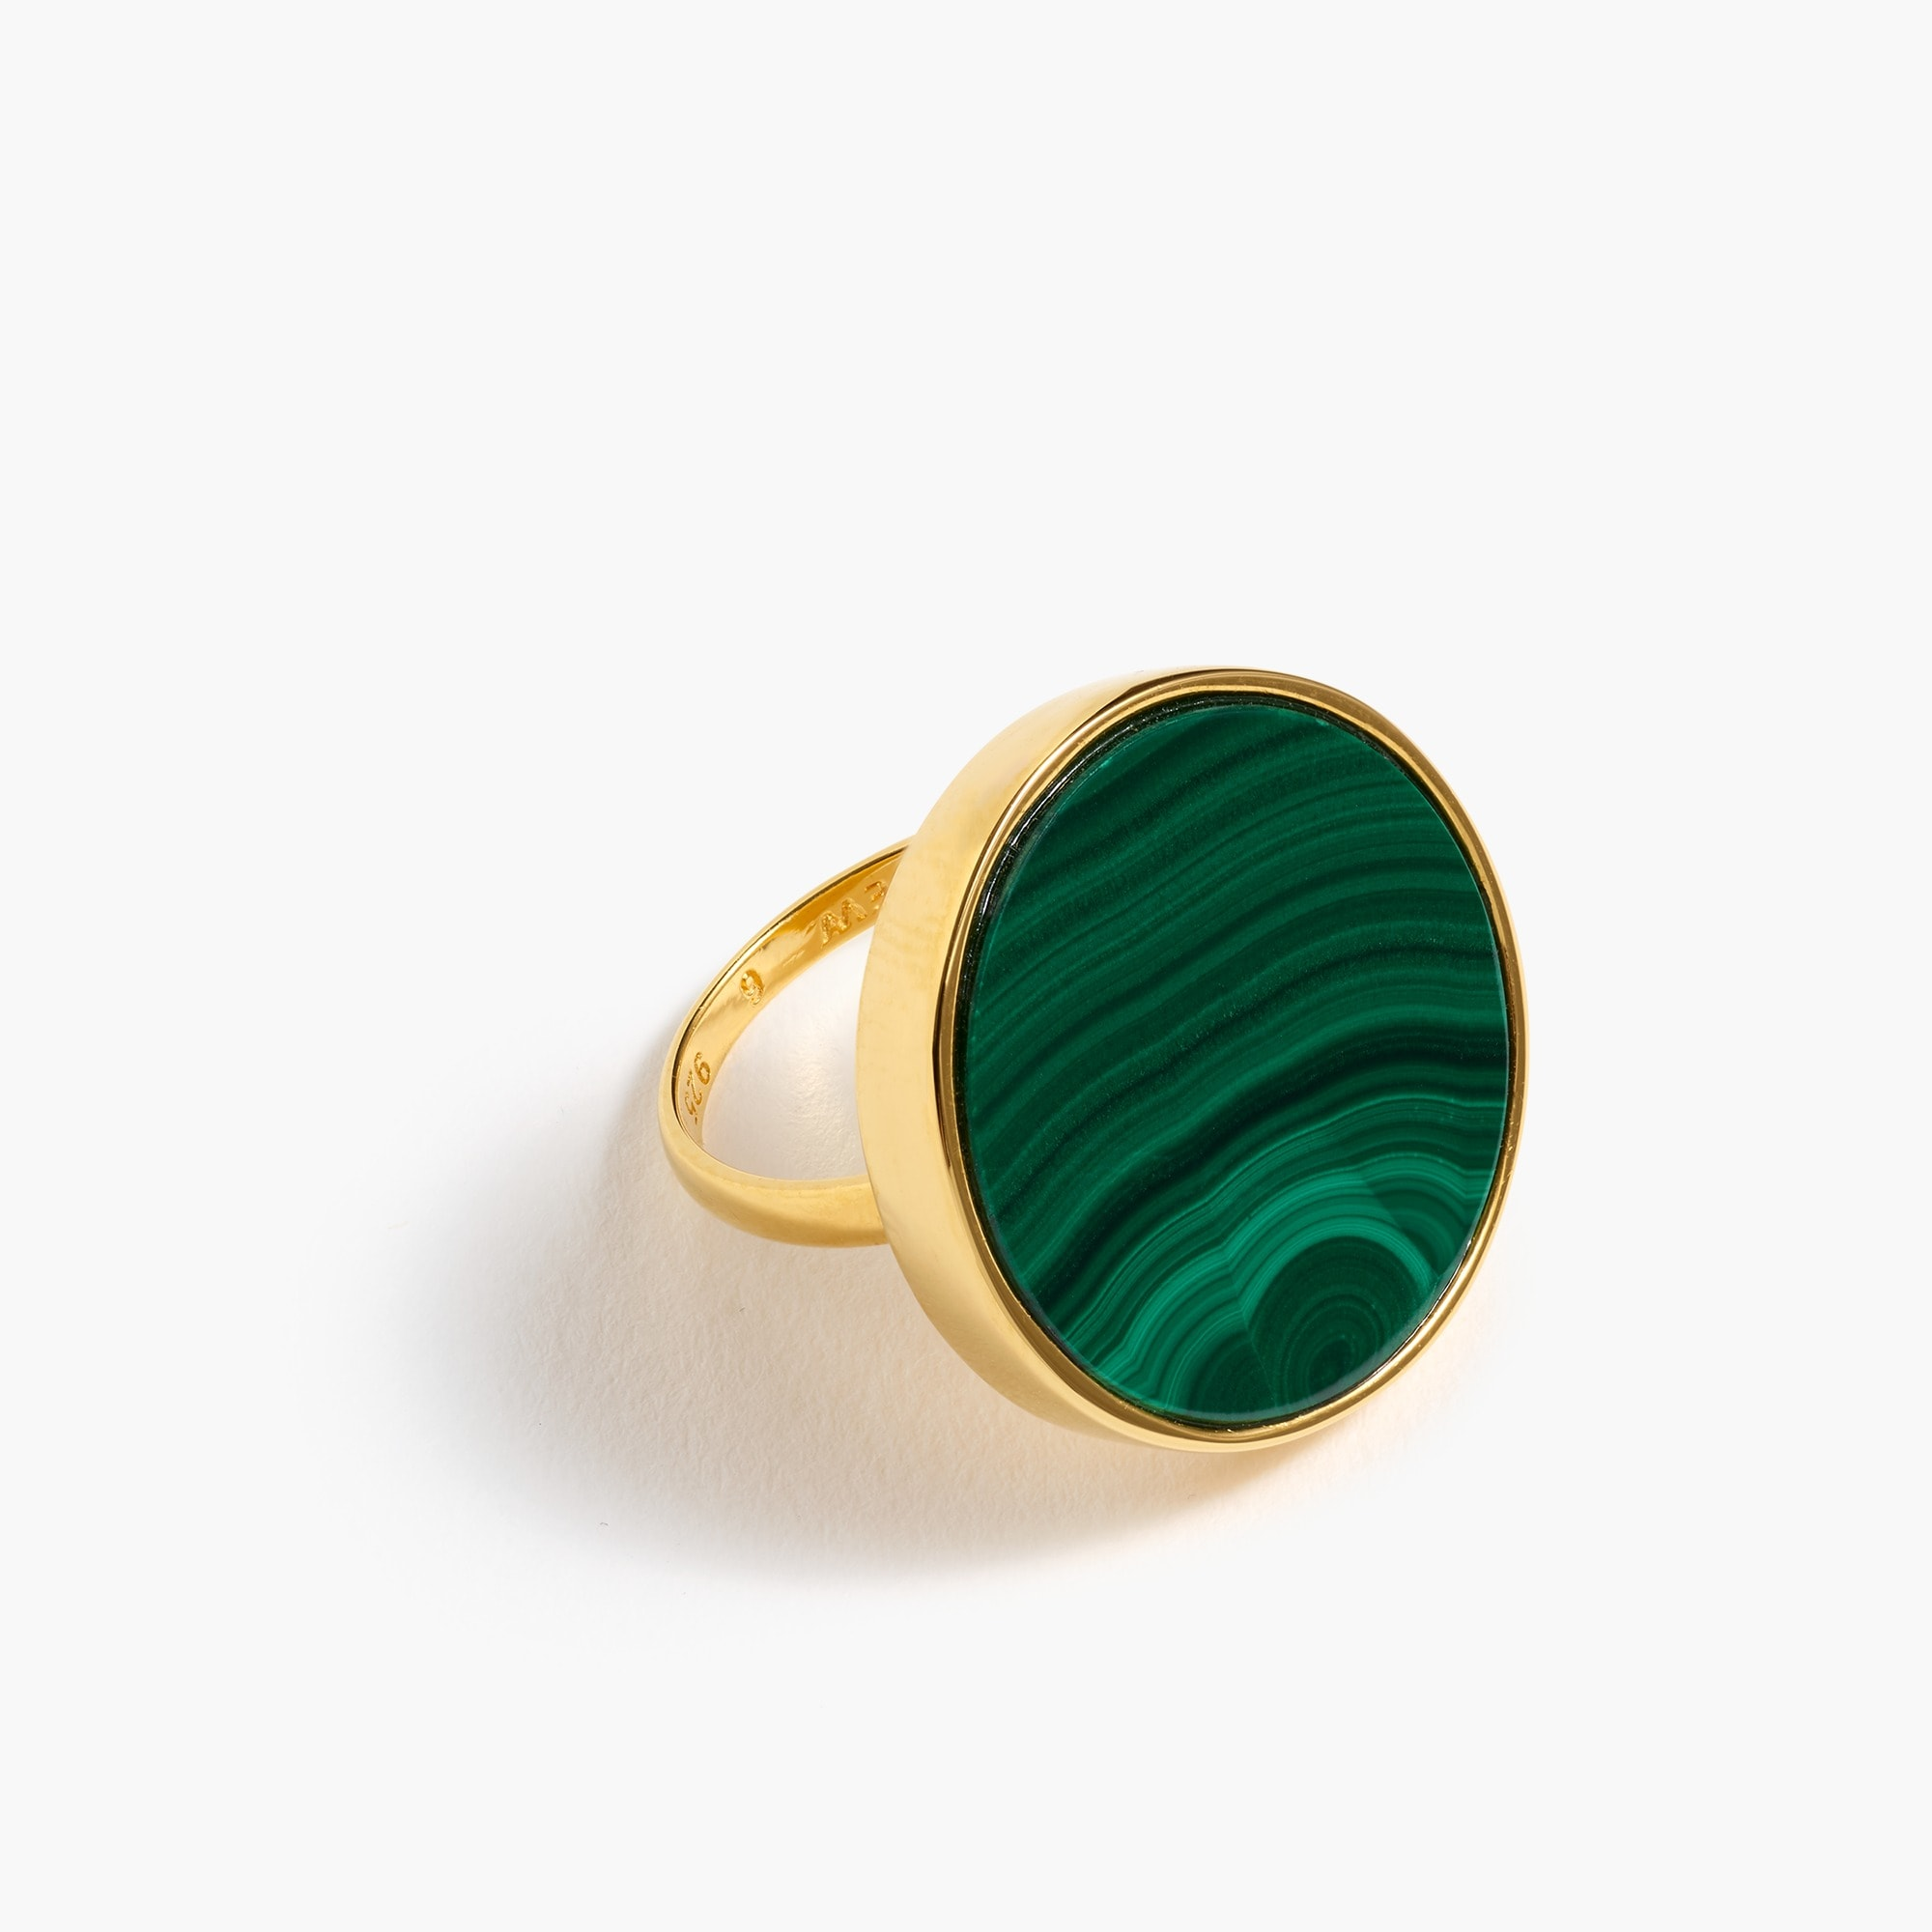 Demi-fine 14K gold-plated malachite ring women new arrivals c